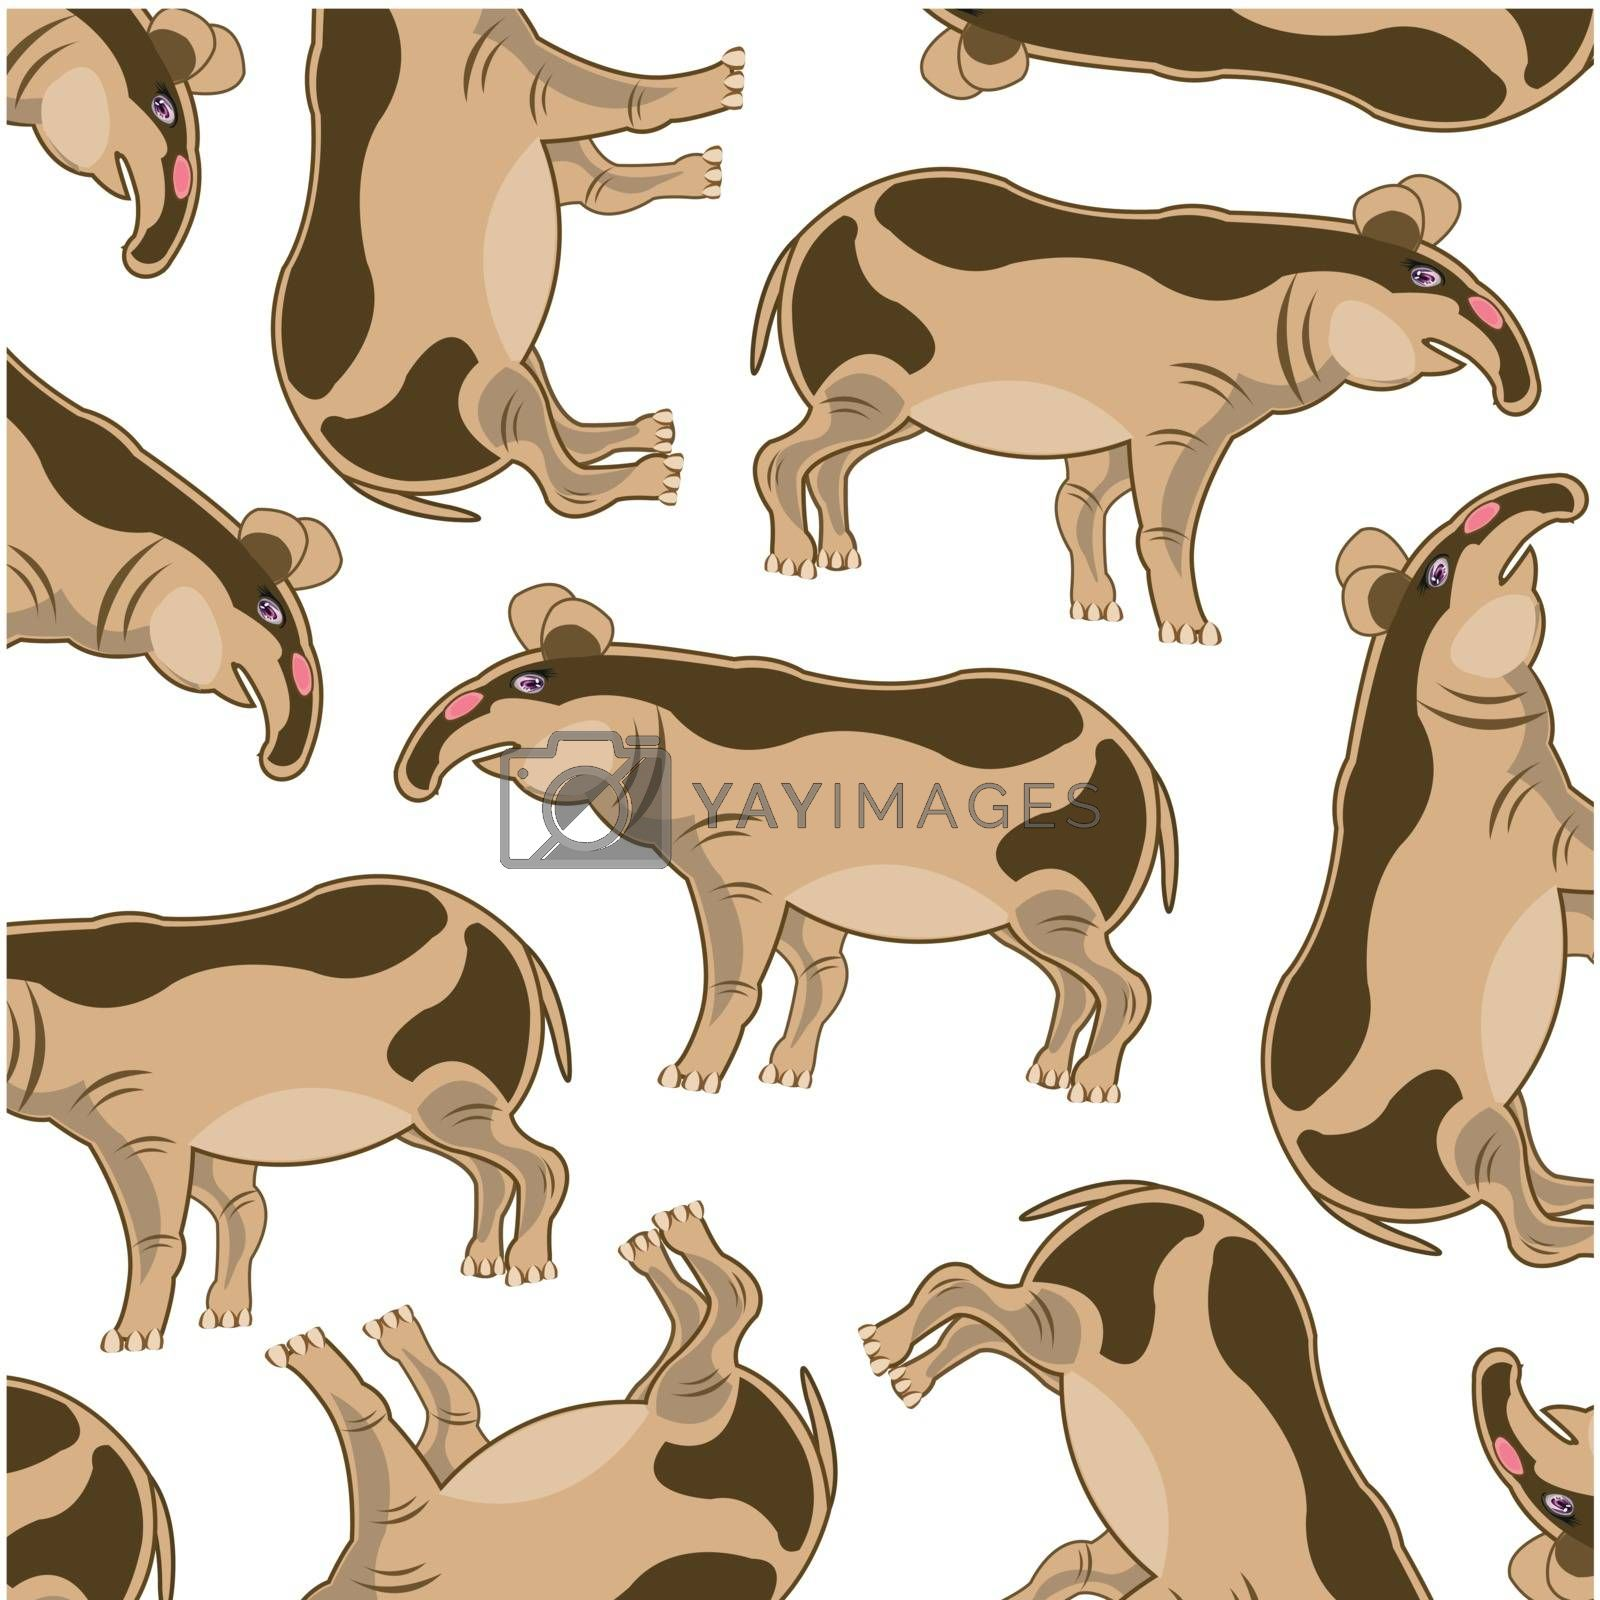 Animal tapir decorative pattern on white background is insulated